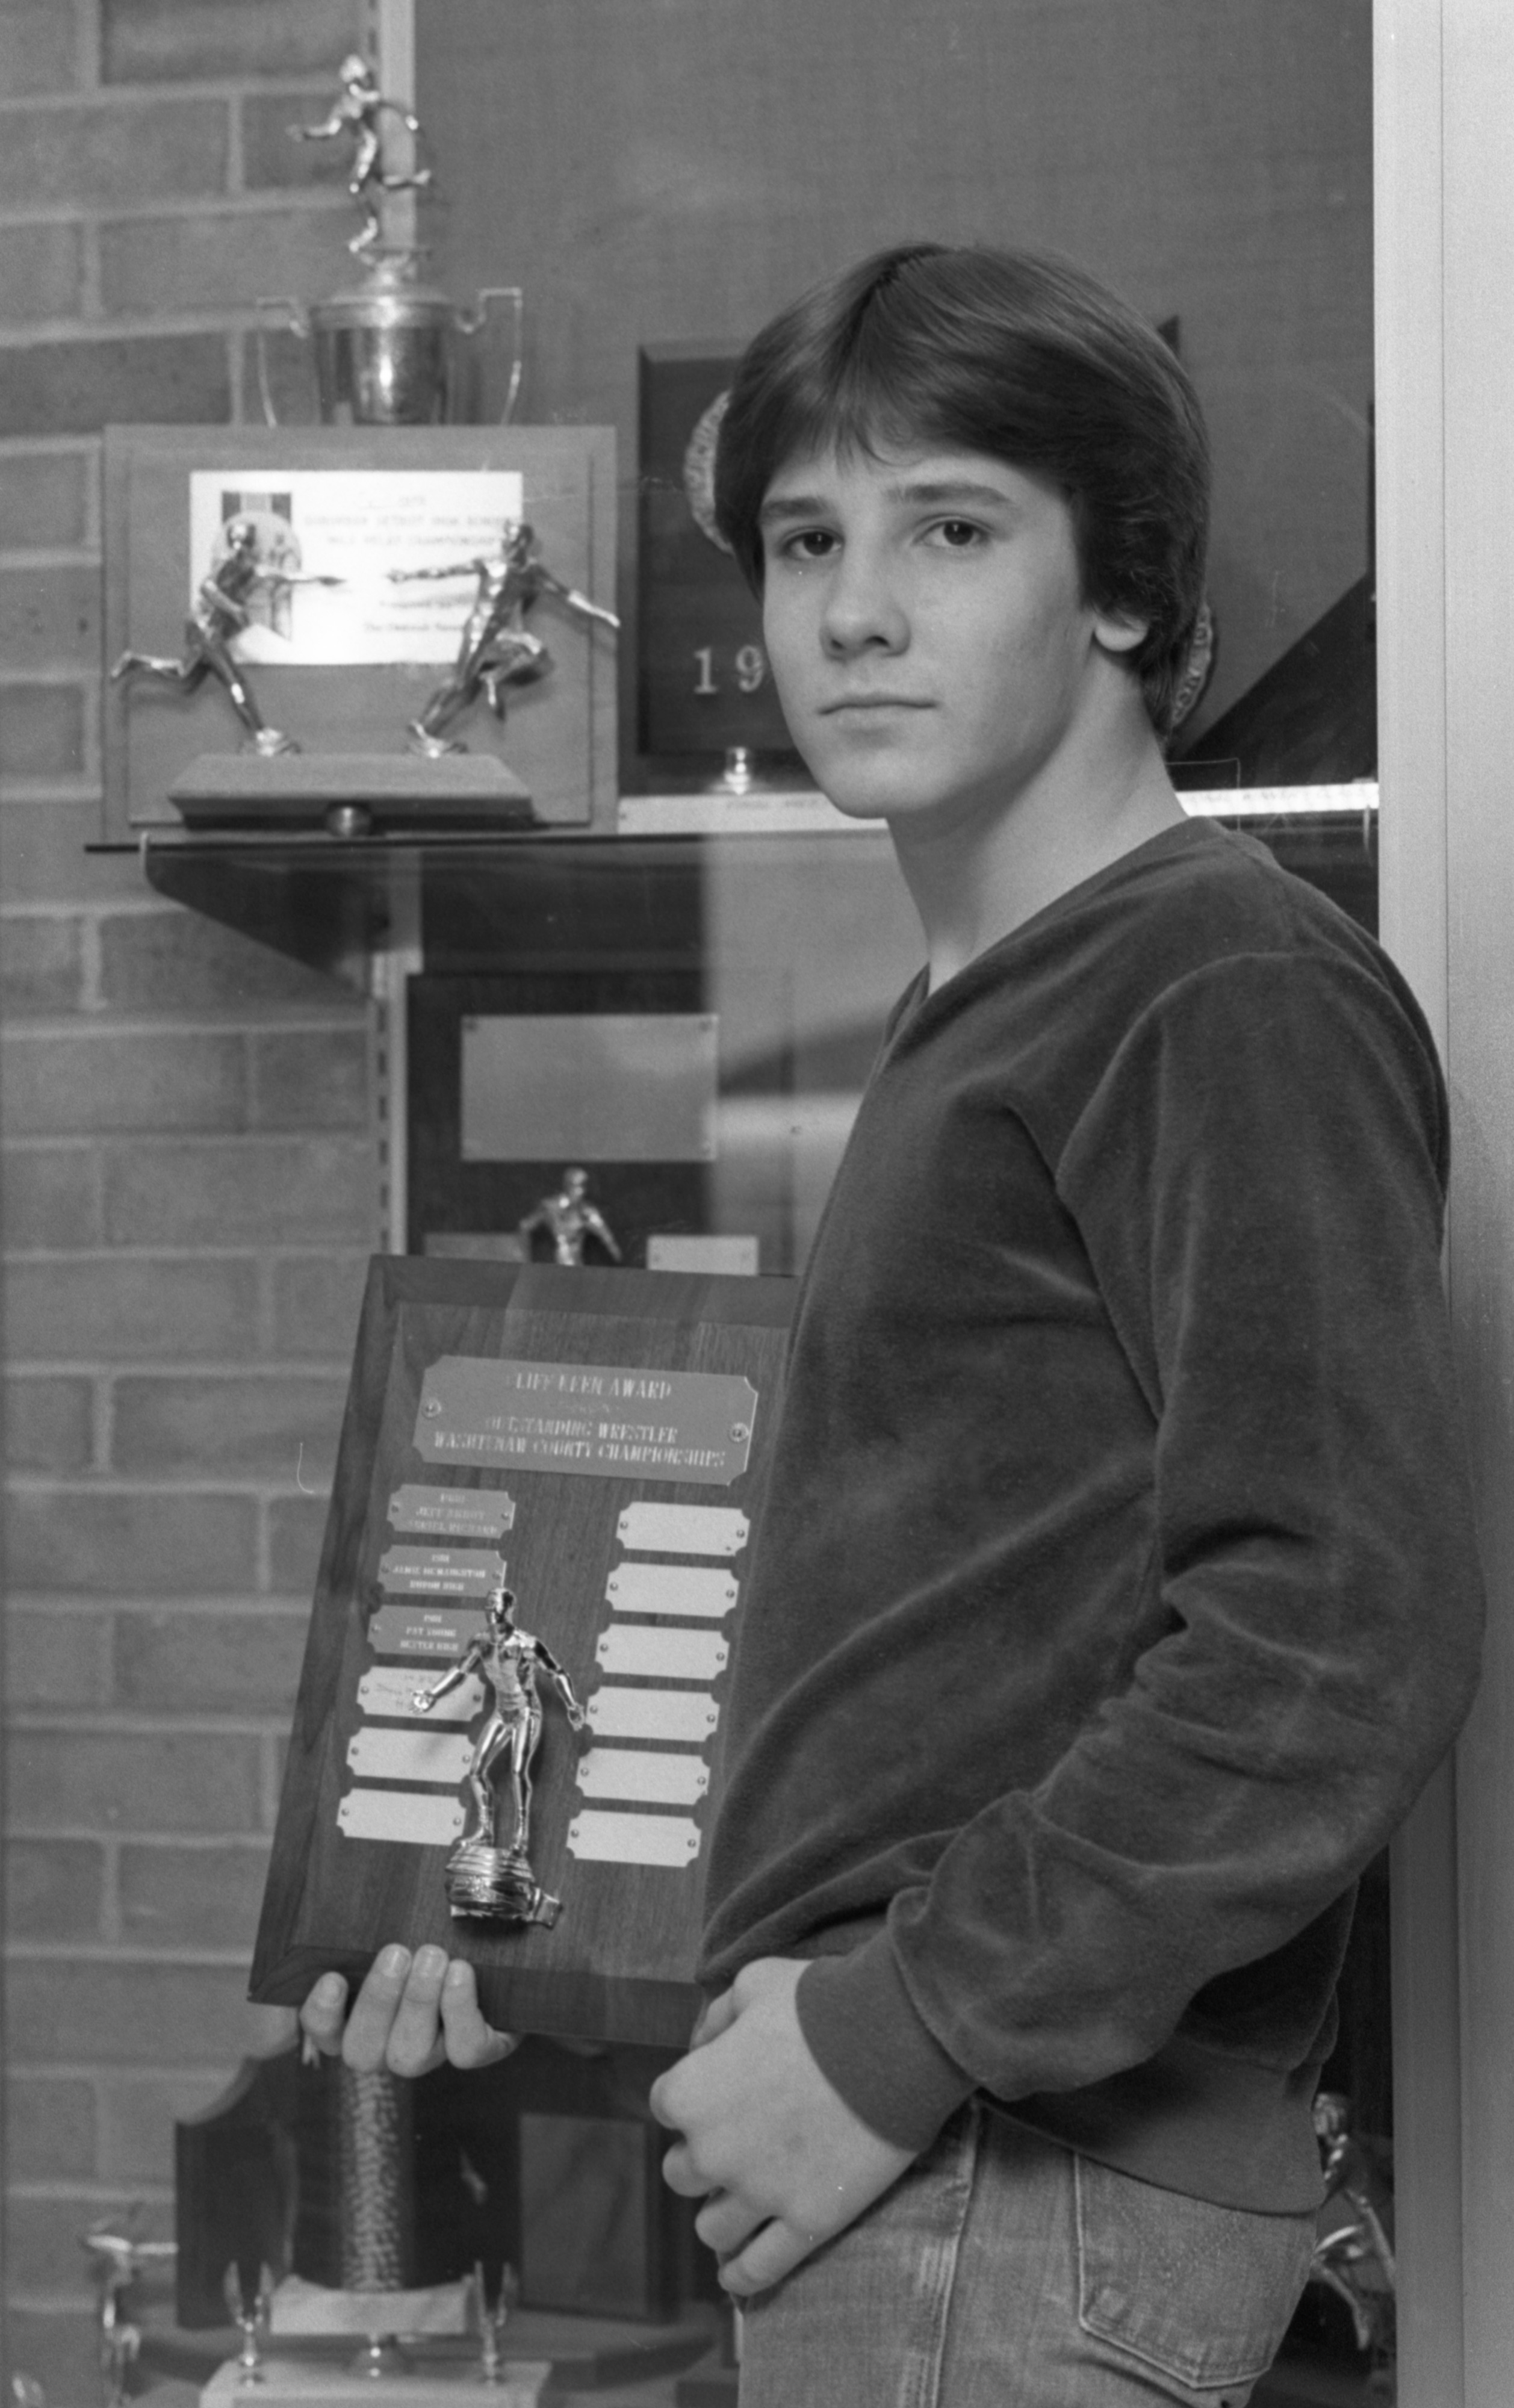 Jamie McNaughton, Champion Wrestler, Displays One Of His Awards, March 1982 image